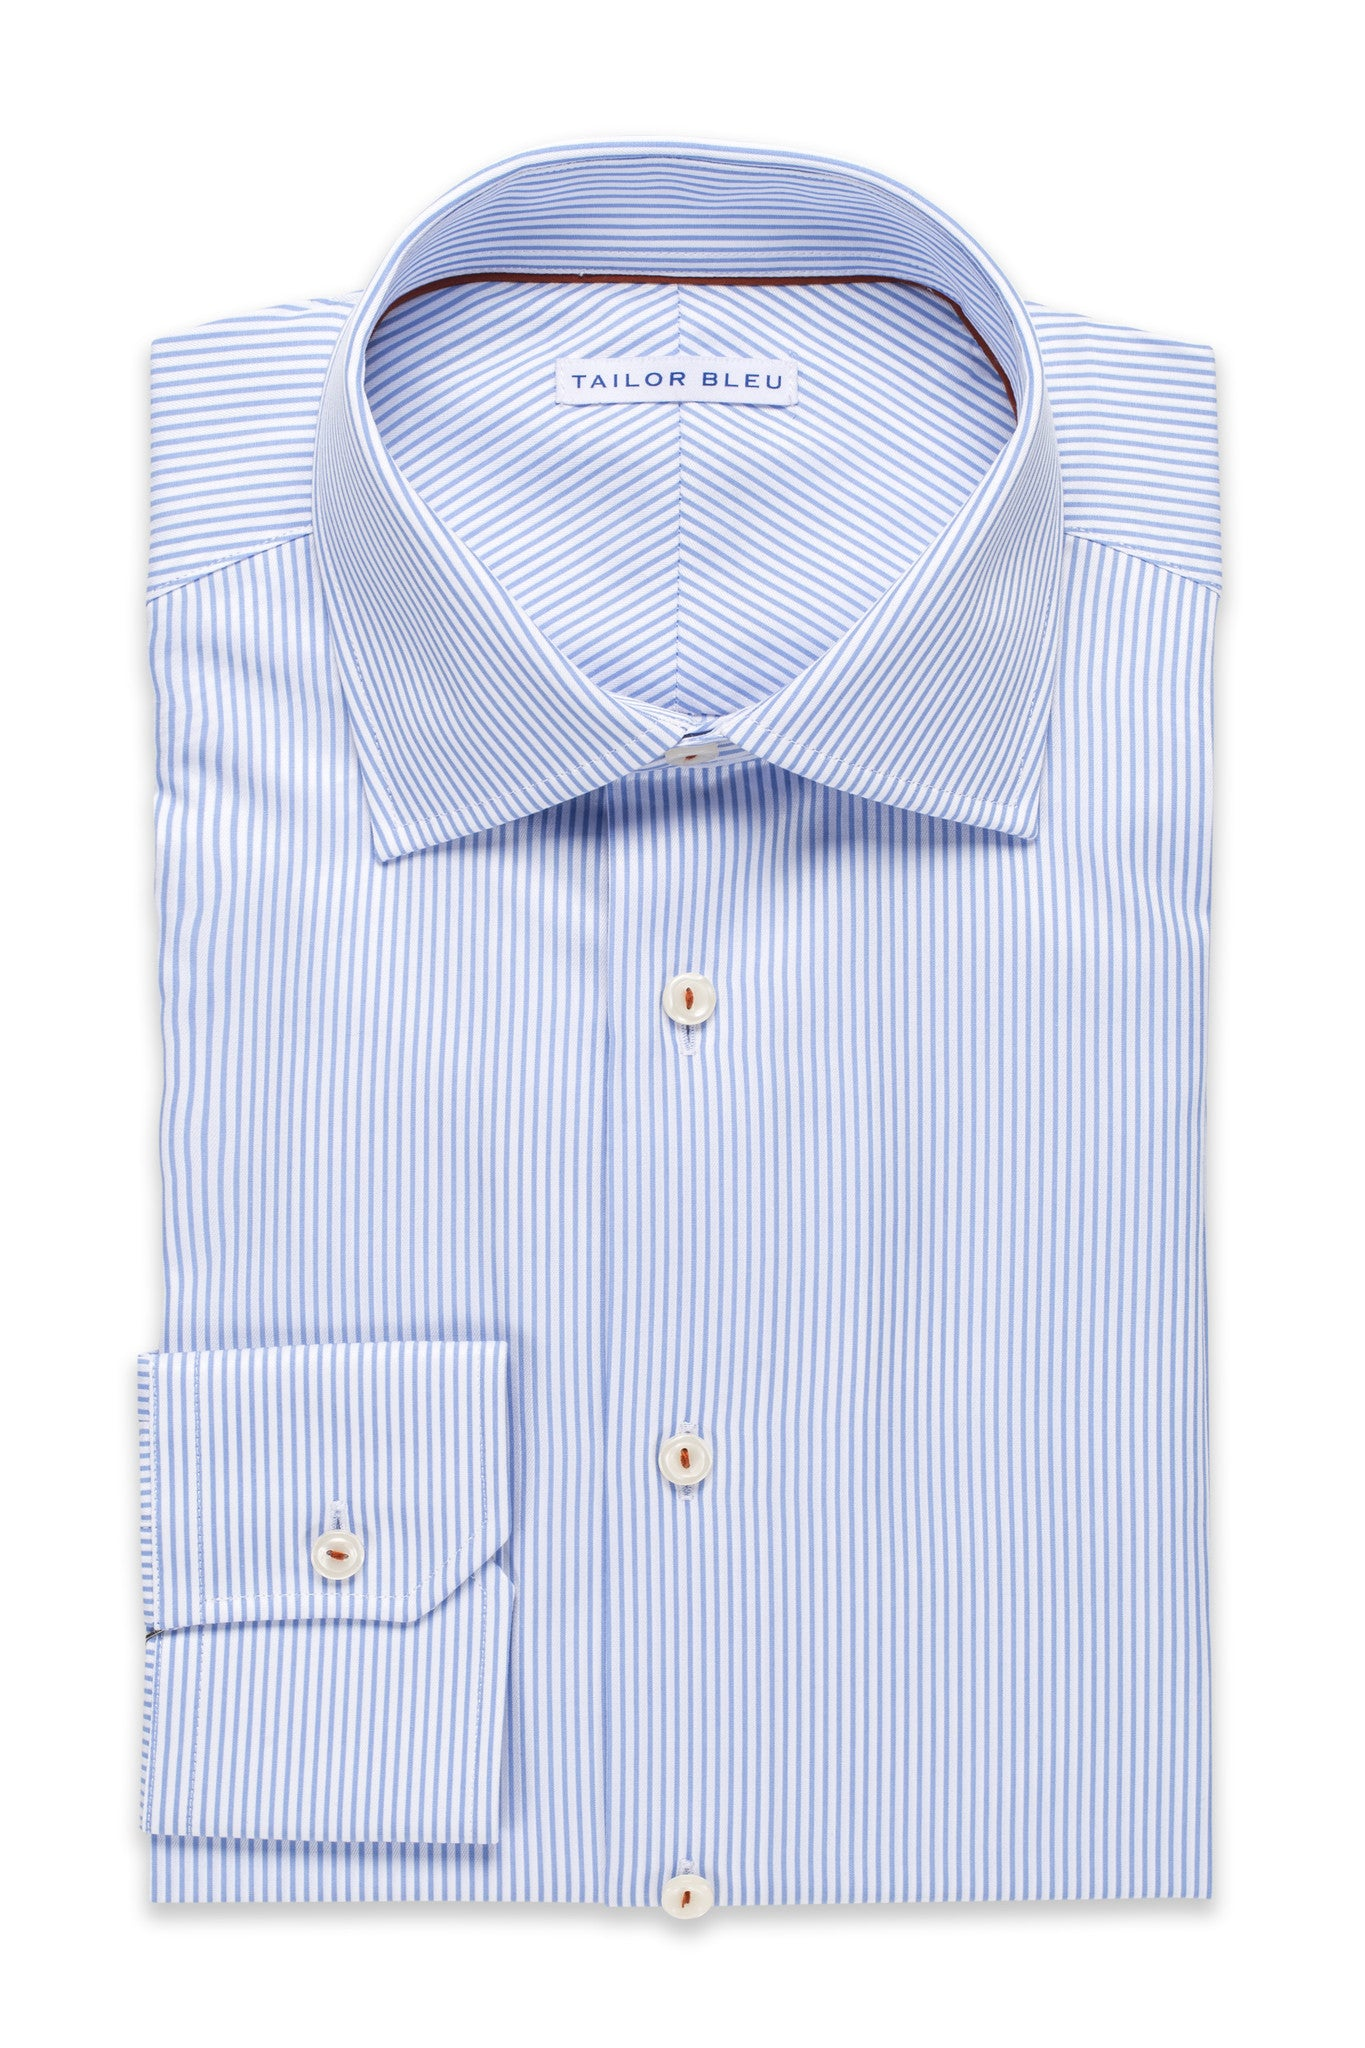 Narrow Pinstripe Shirt - Round Spread Collar- Light Blue